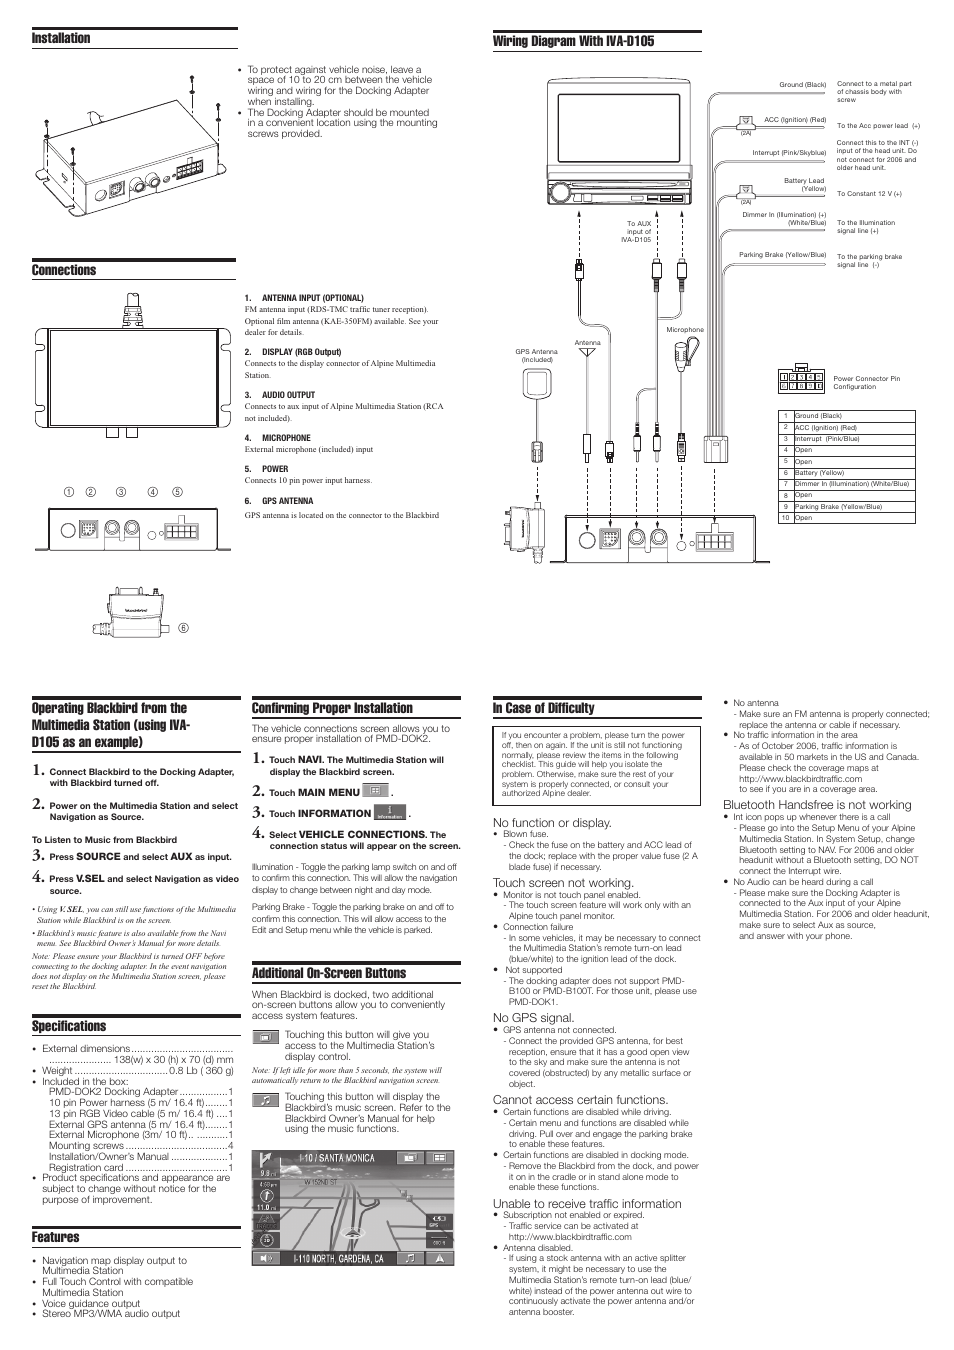 Connections Wiring diagram with ivad105 Specifications – Alpine Wiring Harness Diagram